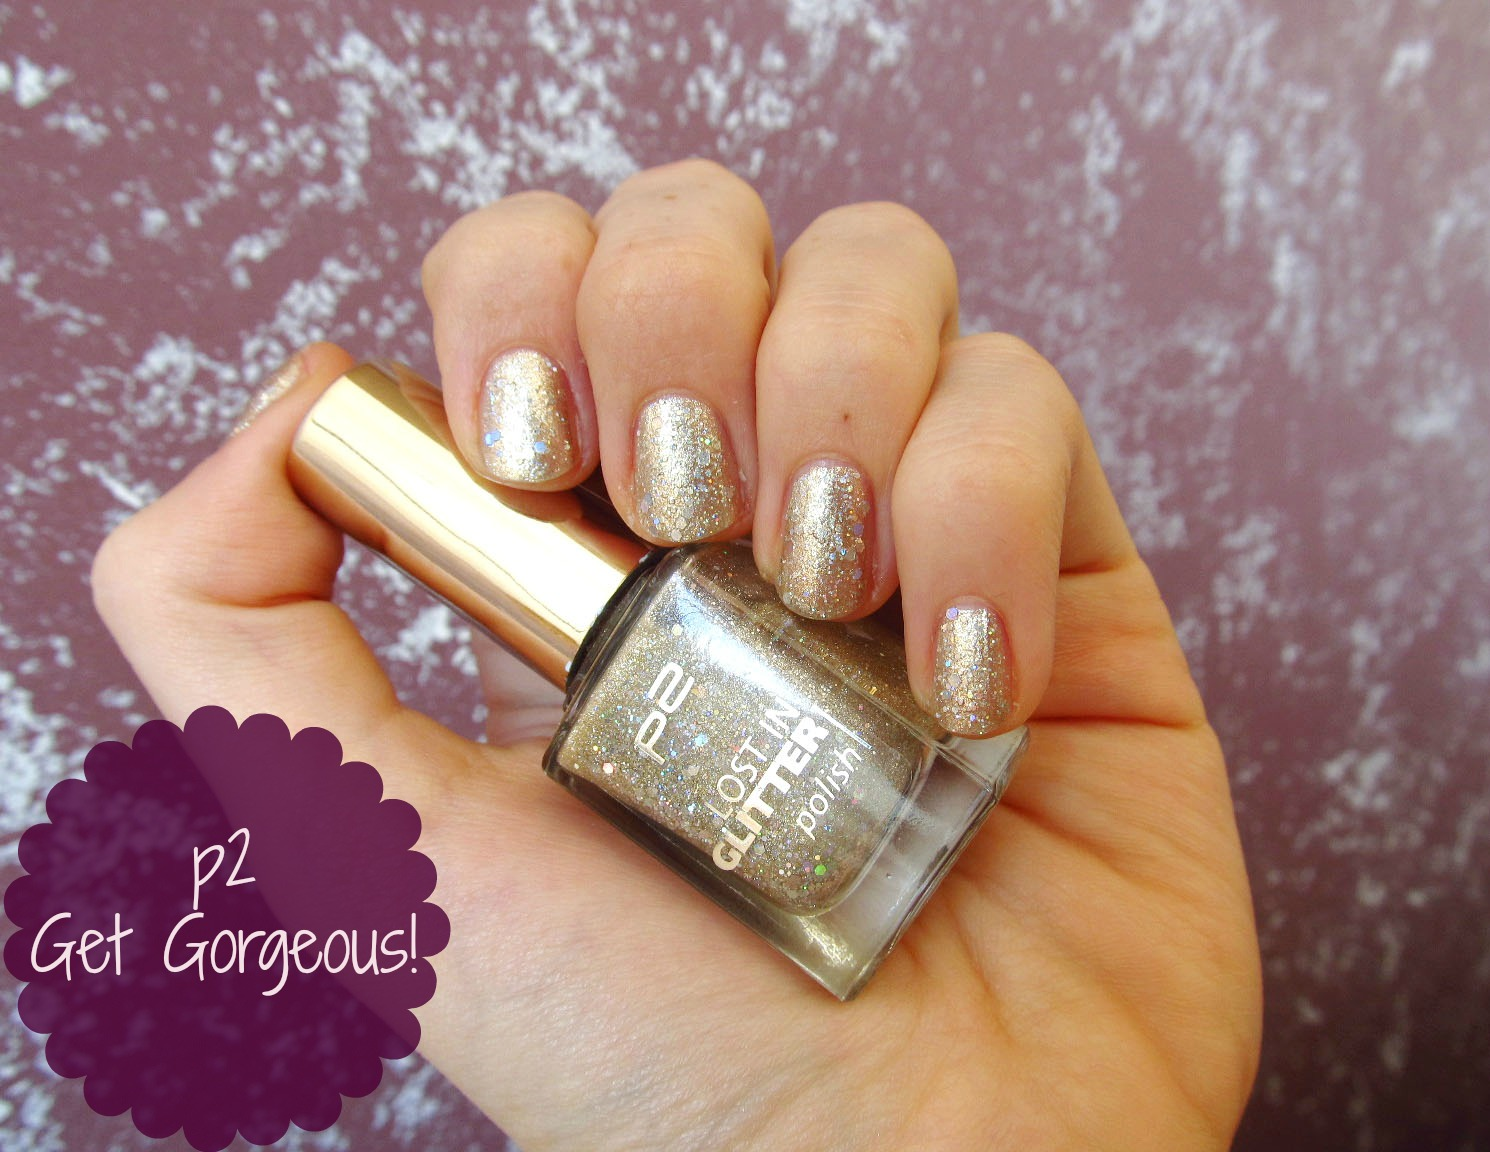 Passing Fancy: Glitter Nails: p2 Lost in Glitter - 02 Get Gorgeous!